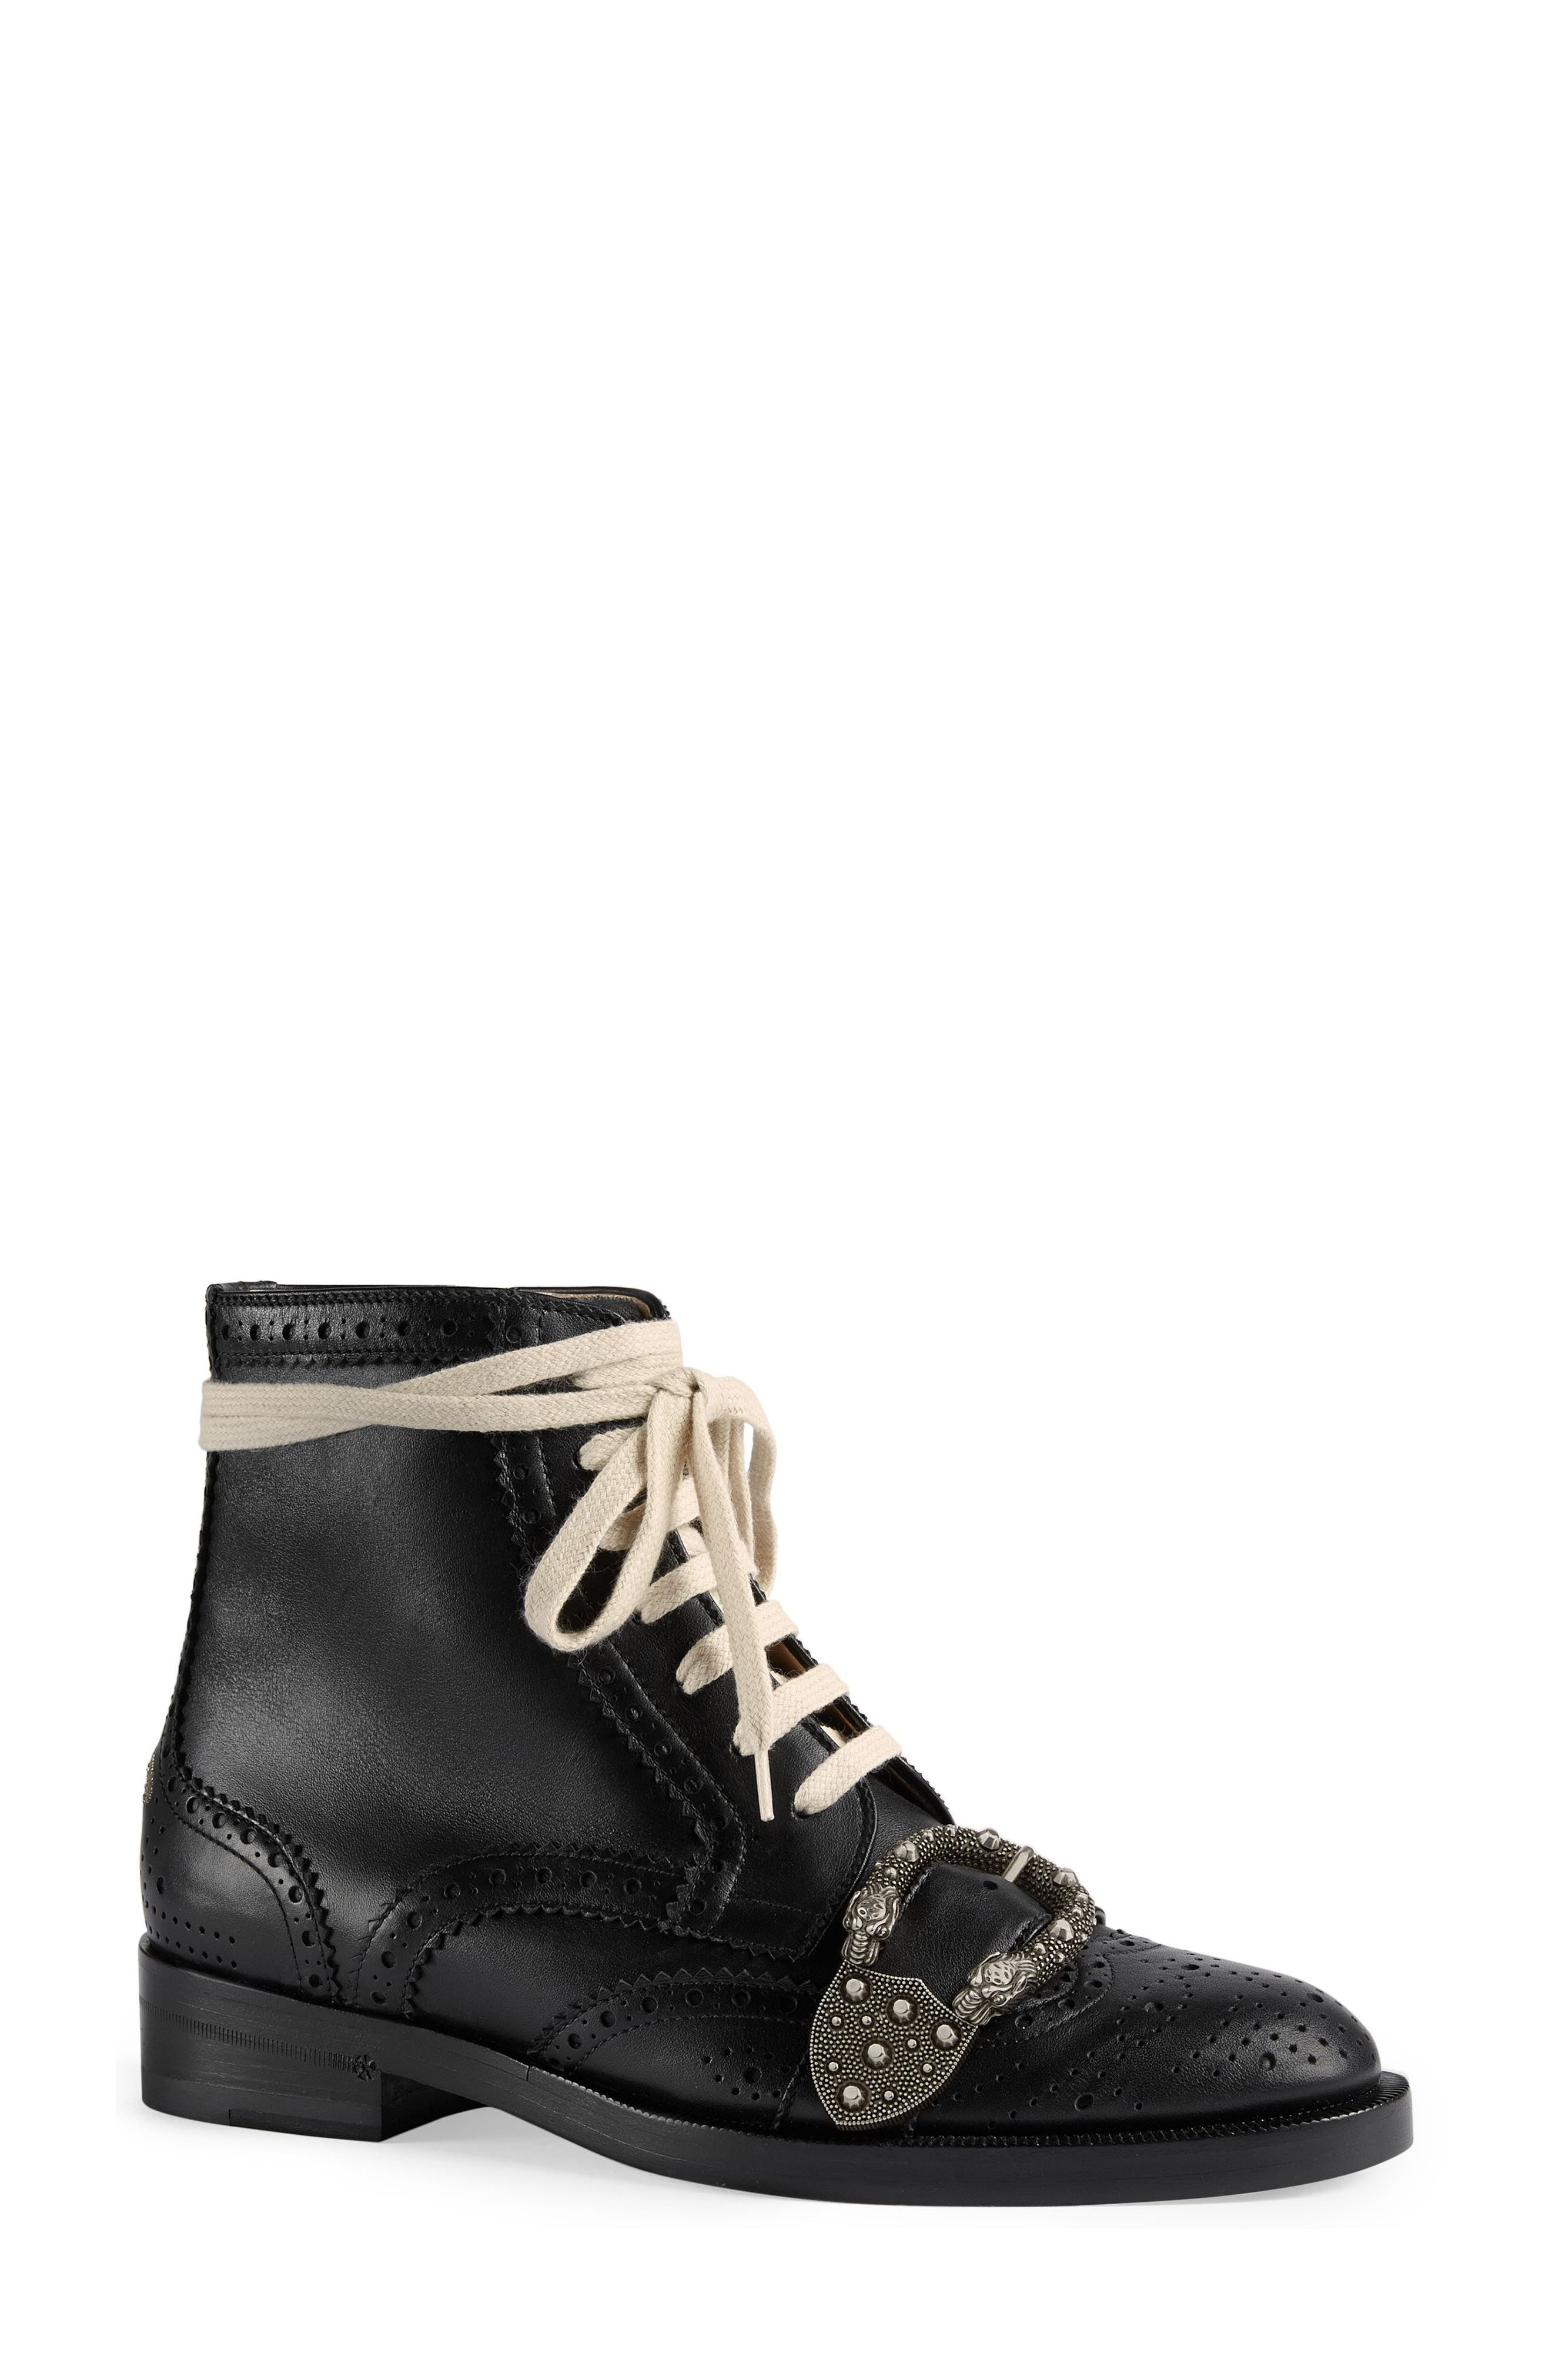 Alternate Image 1 Selected - Gucci Queercore Combat Boot (Women)